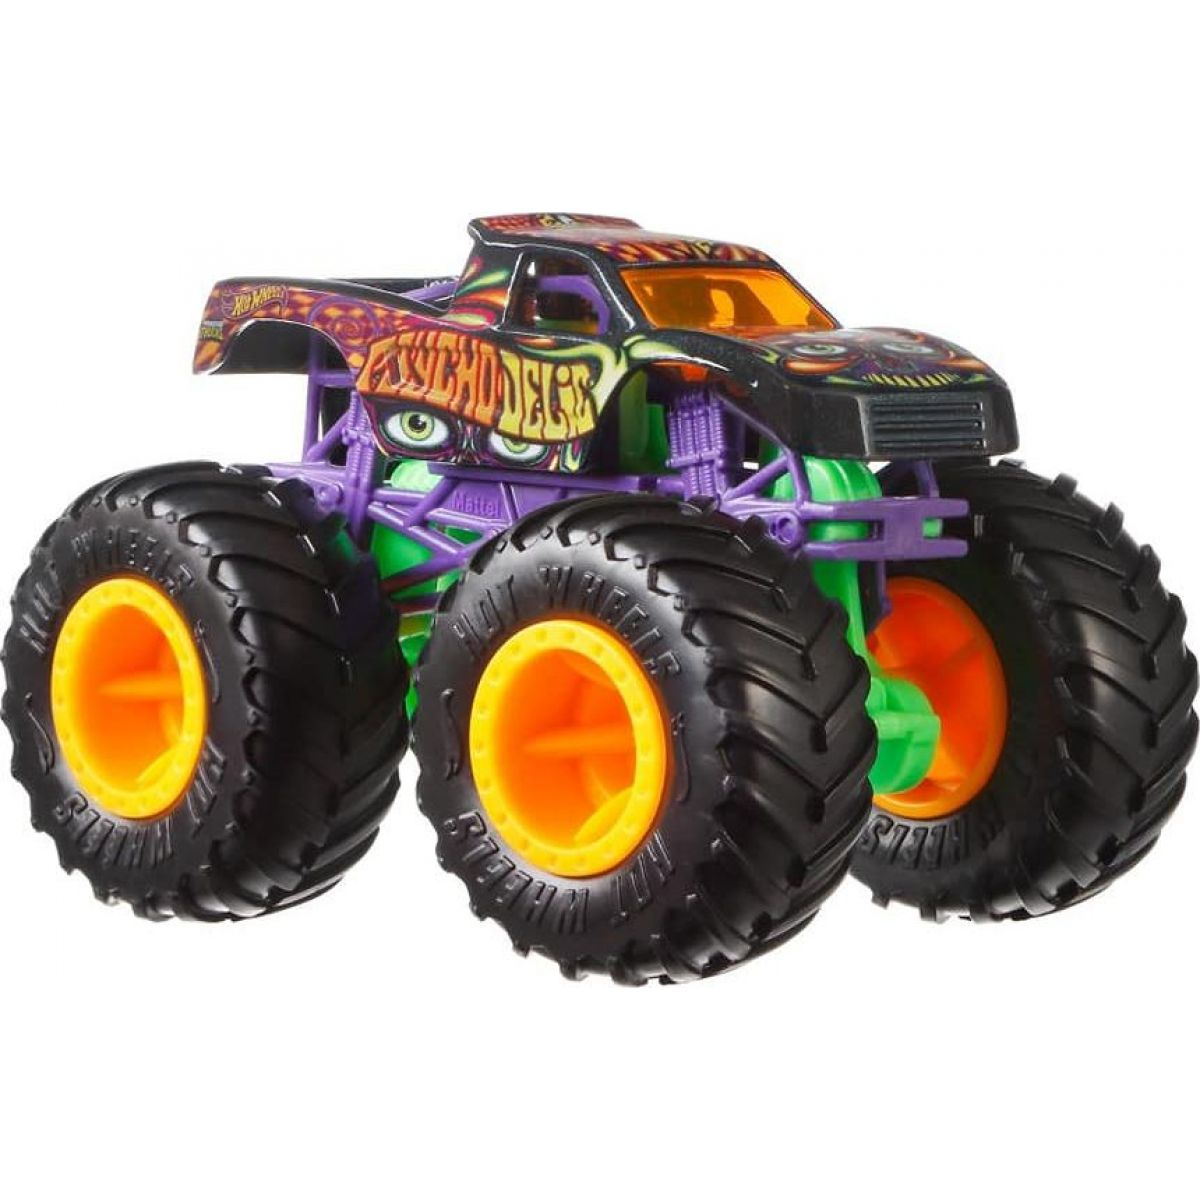 Hot Wheels Monster trucks kaskadérske kúsky Psycho Delic